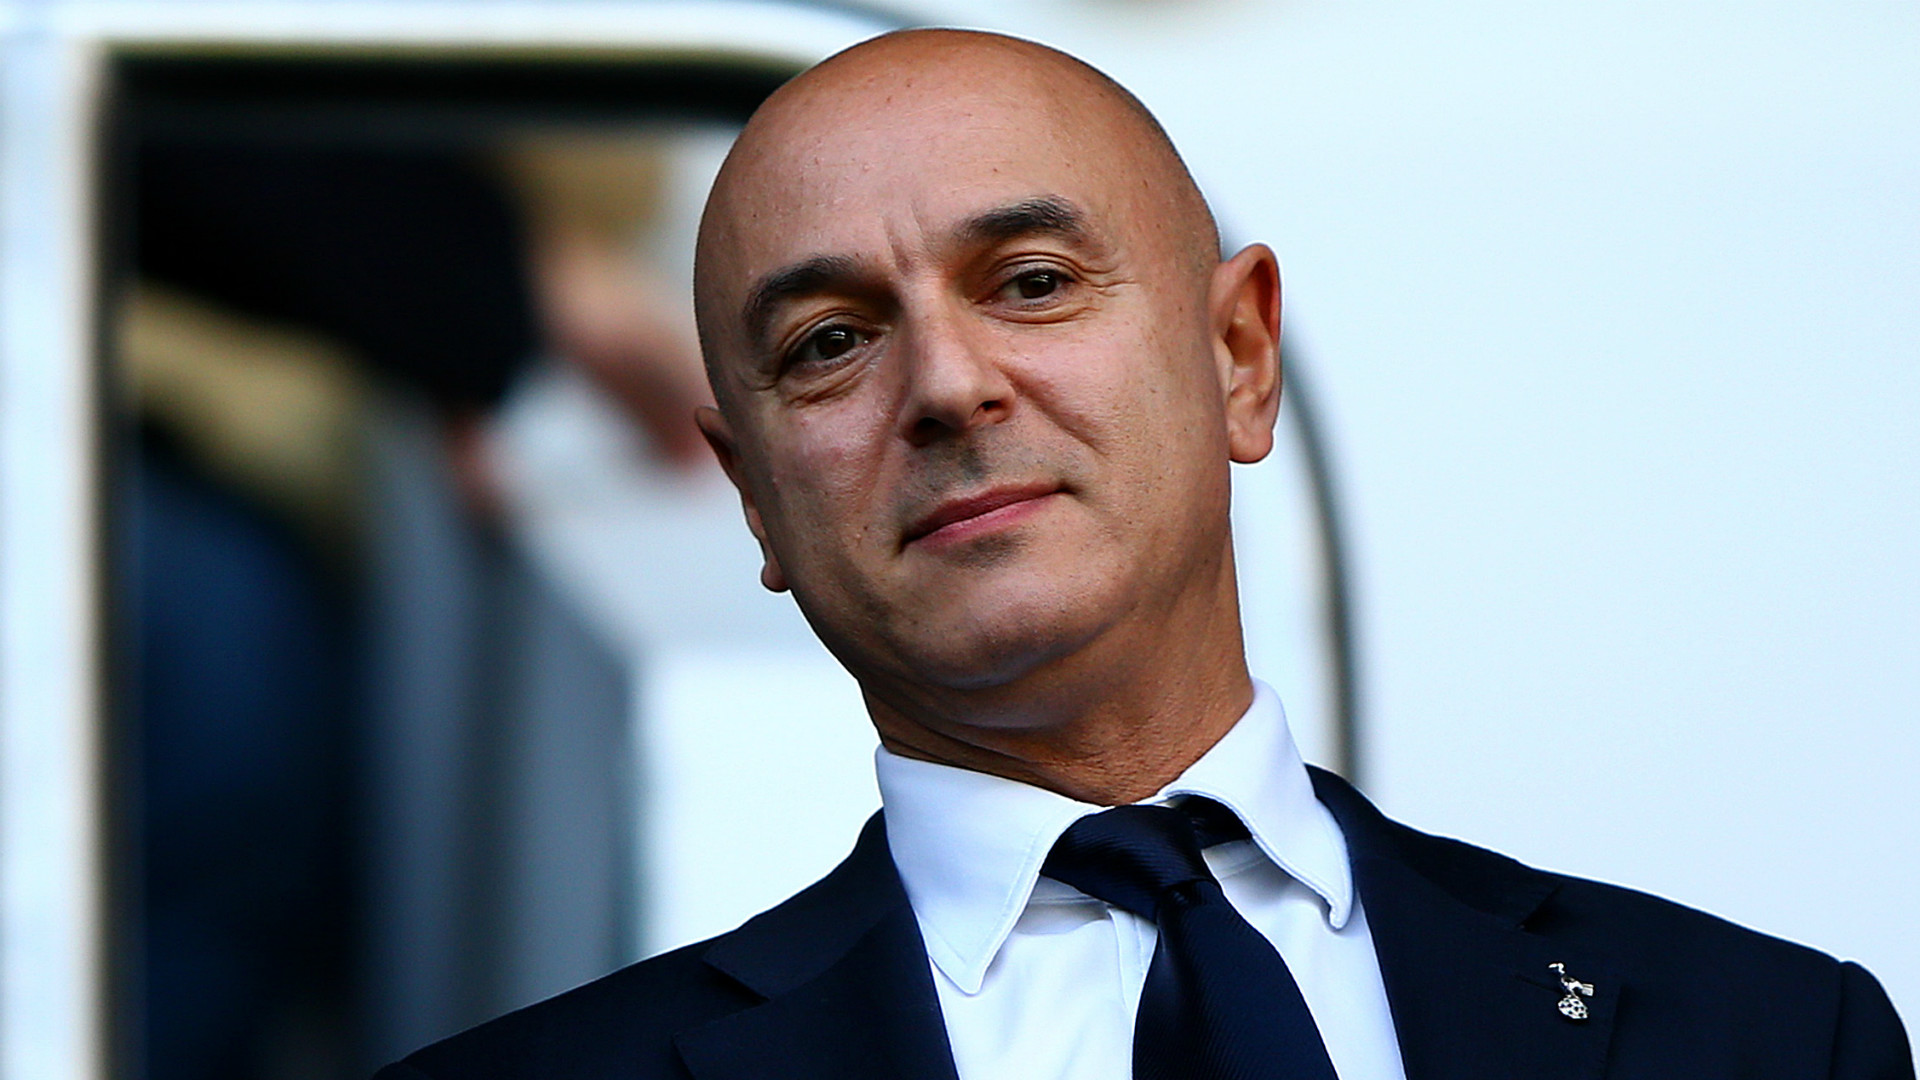 Tottenham reverses decision to use government money for staff salaries